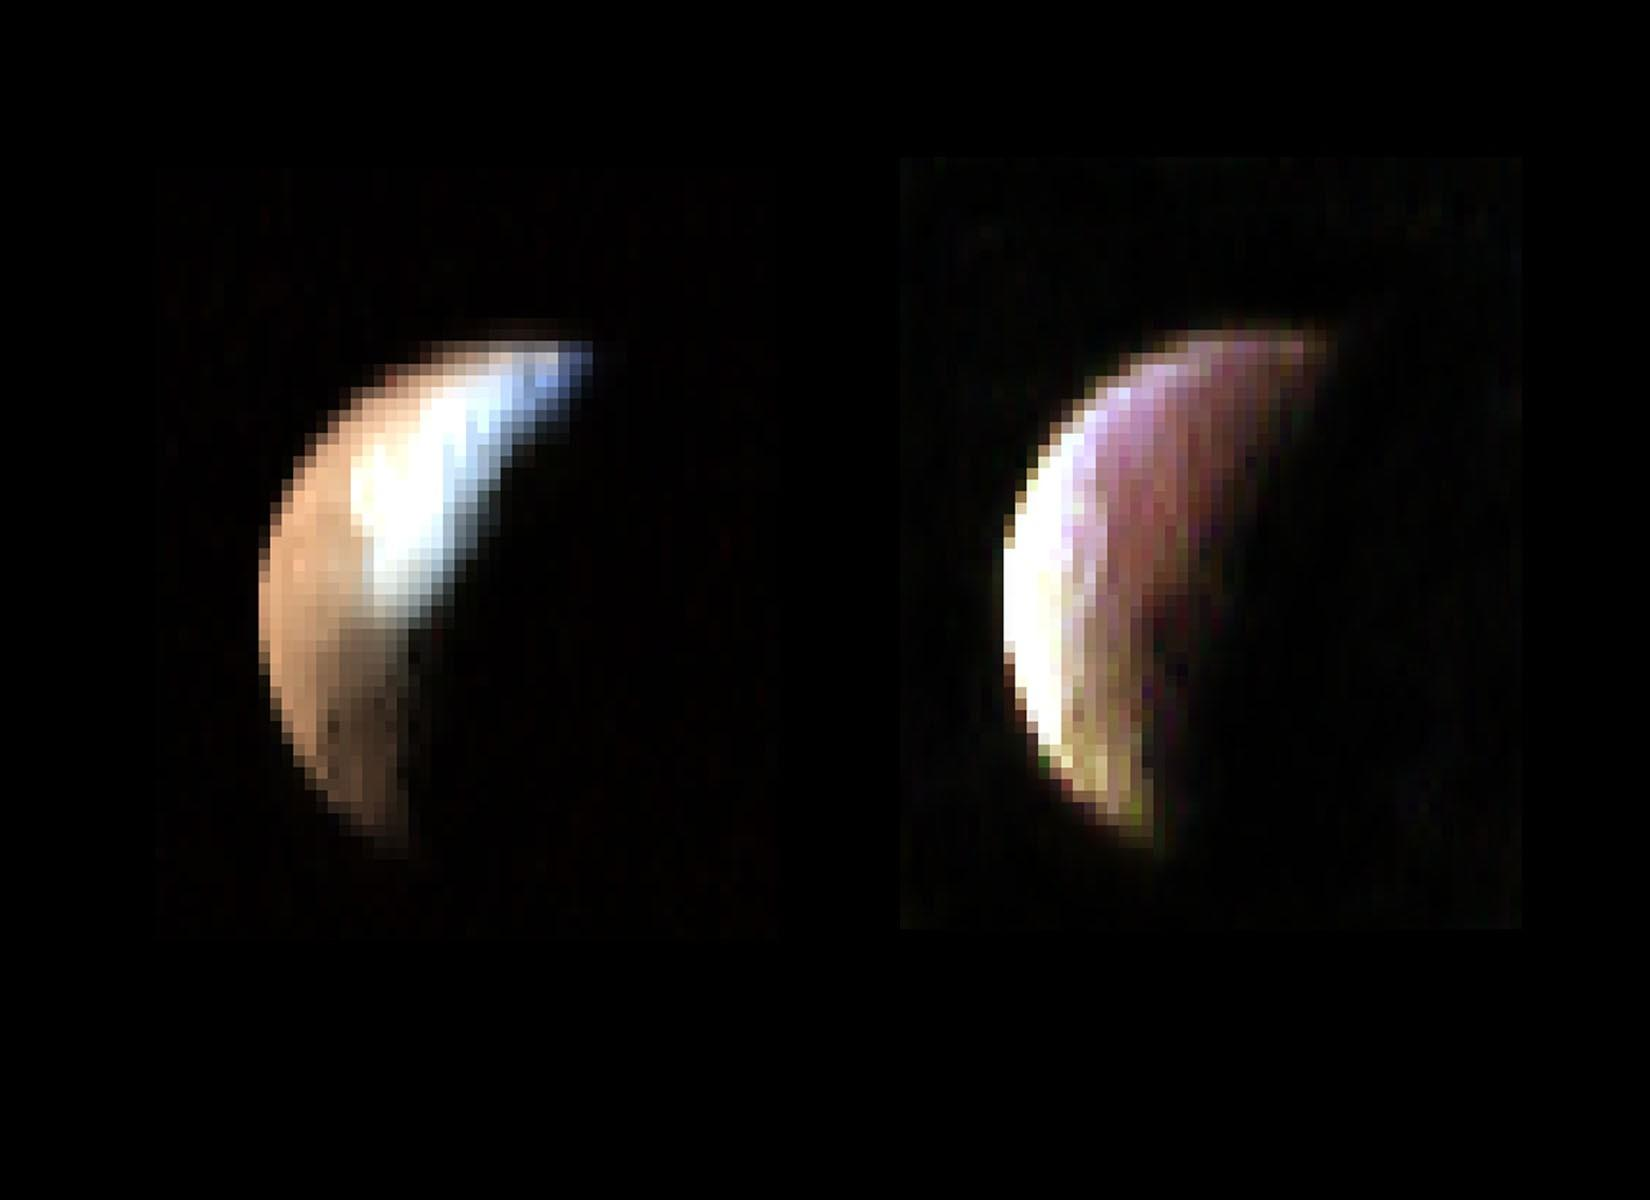 Fuzzy color images of Iapetus